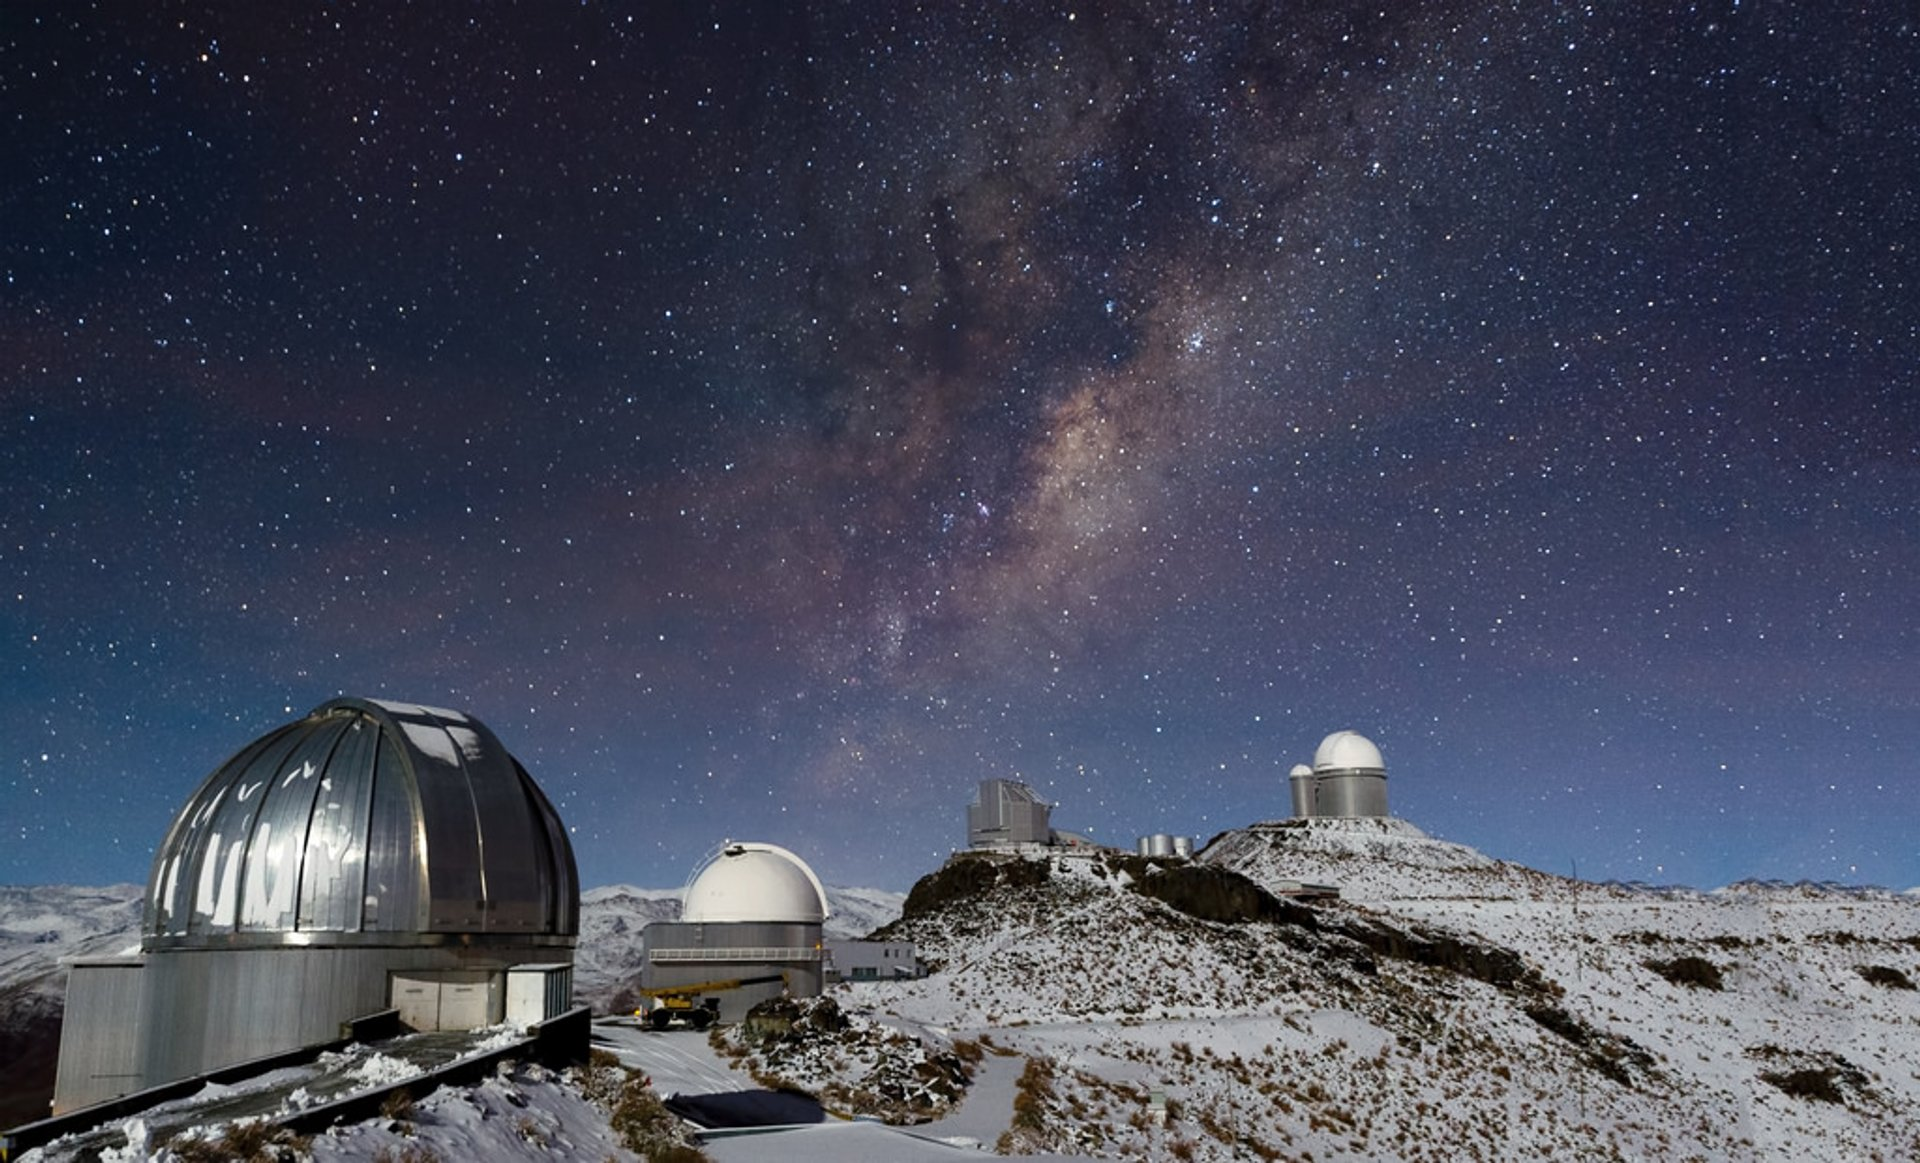 Stargazing in Chile 2020 - Best Time